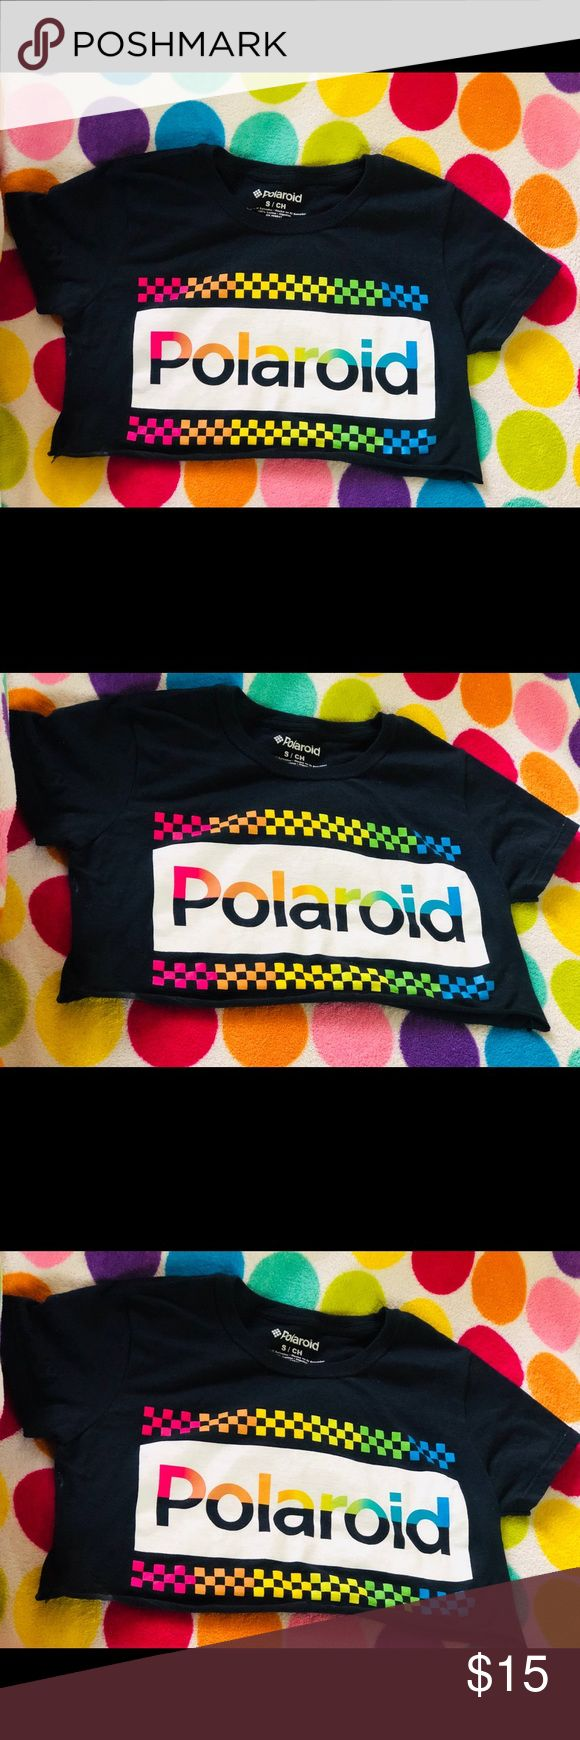 Cropped Polaroid crop top Size small. Length: 13 inches. Brand new. Never worn. ...